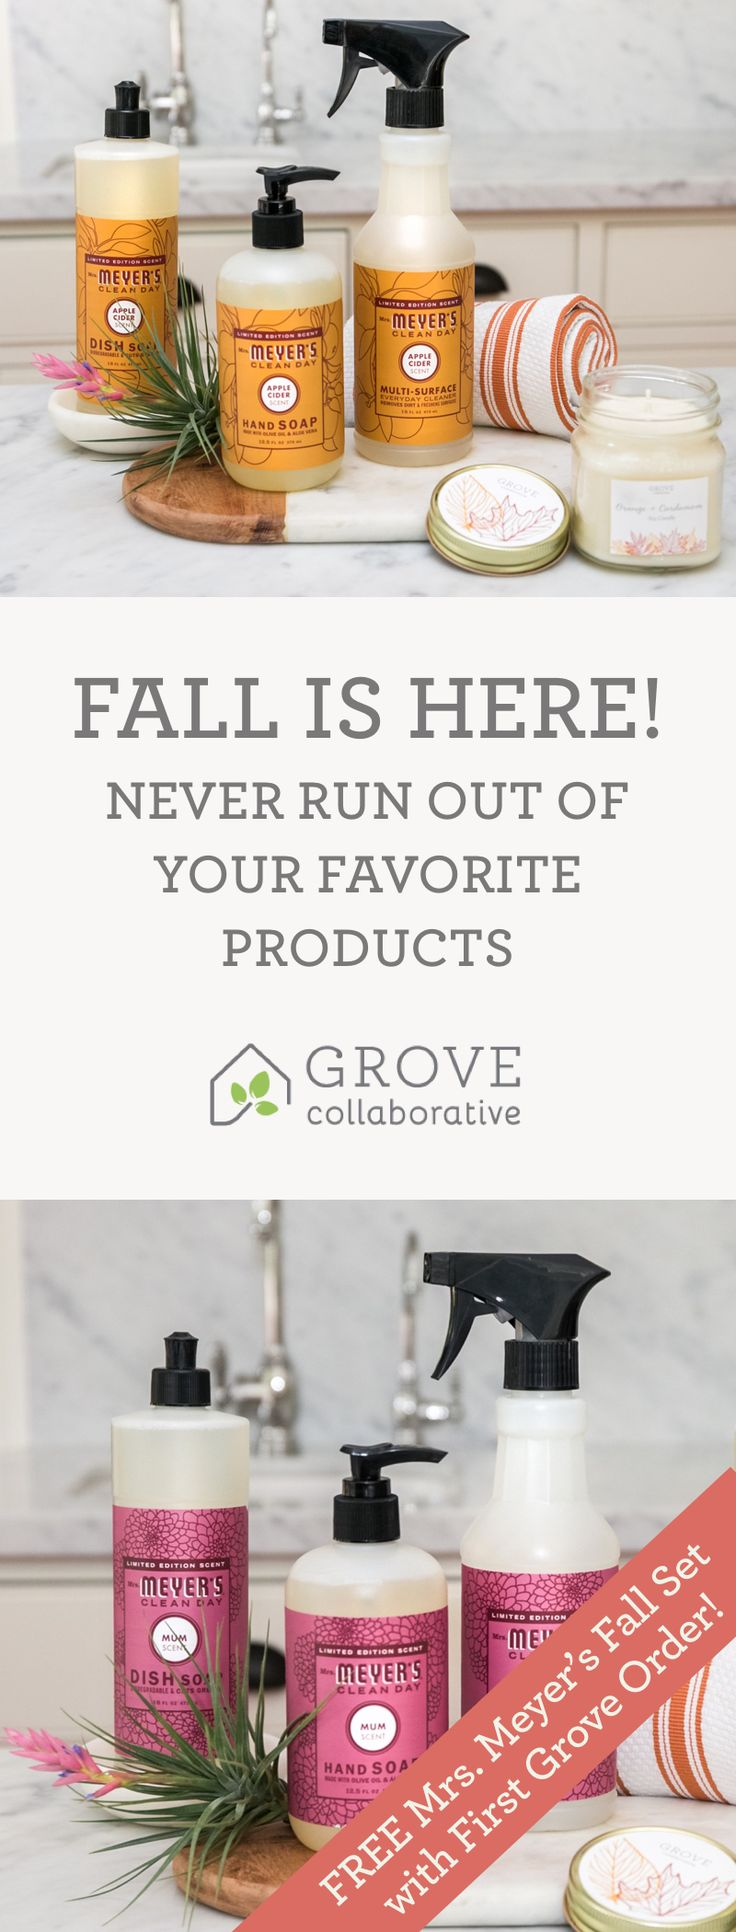 Sign up and discover the best natural household and personal products    https://www.grove.co/s/pinmmcdtrio/?offer=pinmmcdtrio&flow=hiw-spray&utm_medium=social&utm_source=pinprospect&utm_campaign=pinterest&utm_content=Retargeting&utm_term=50.2p